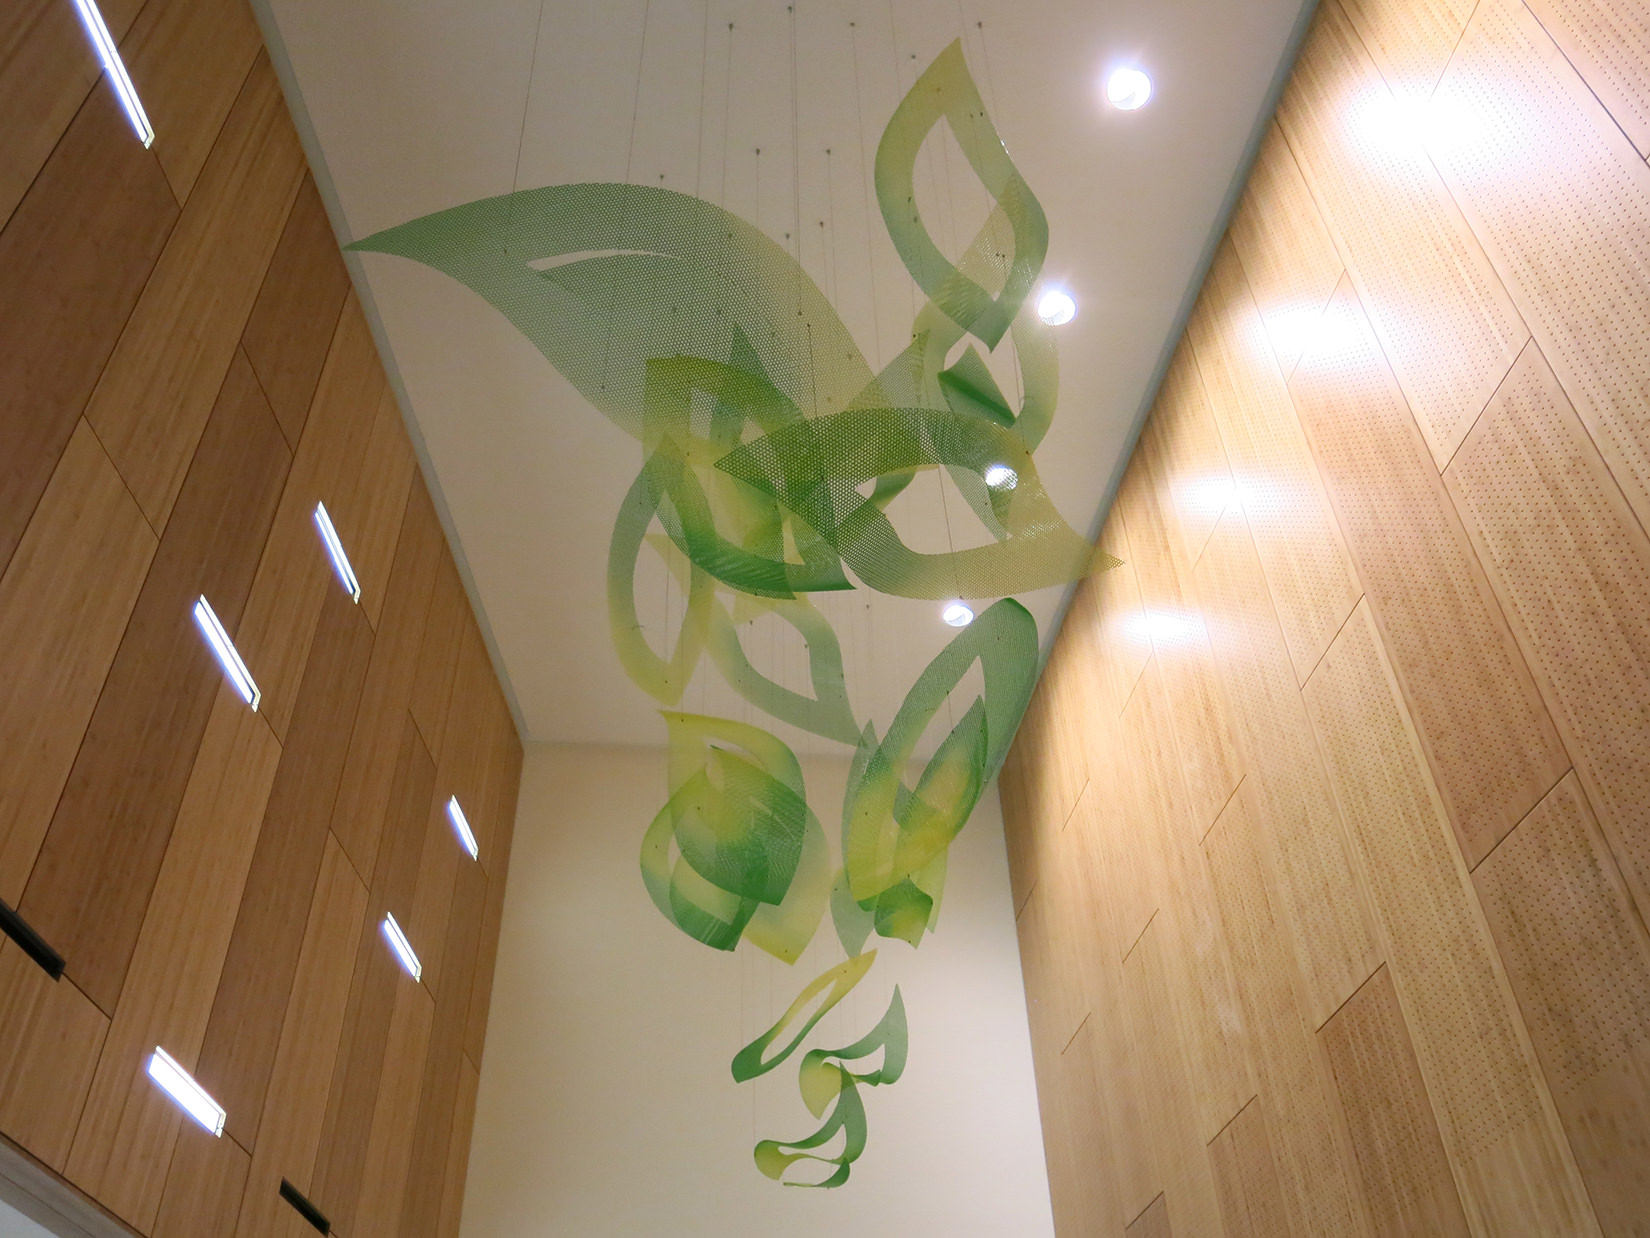 Suspended petal trail of Flower of Hope, hospital art by Talley Fisher in Santa Clara Valley Medical Center.